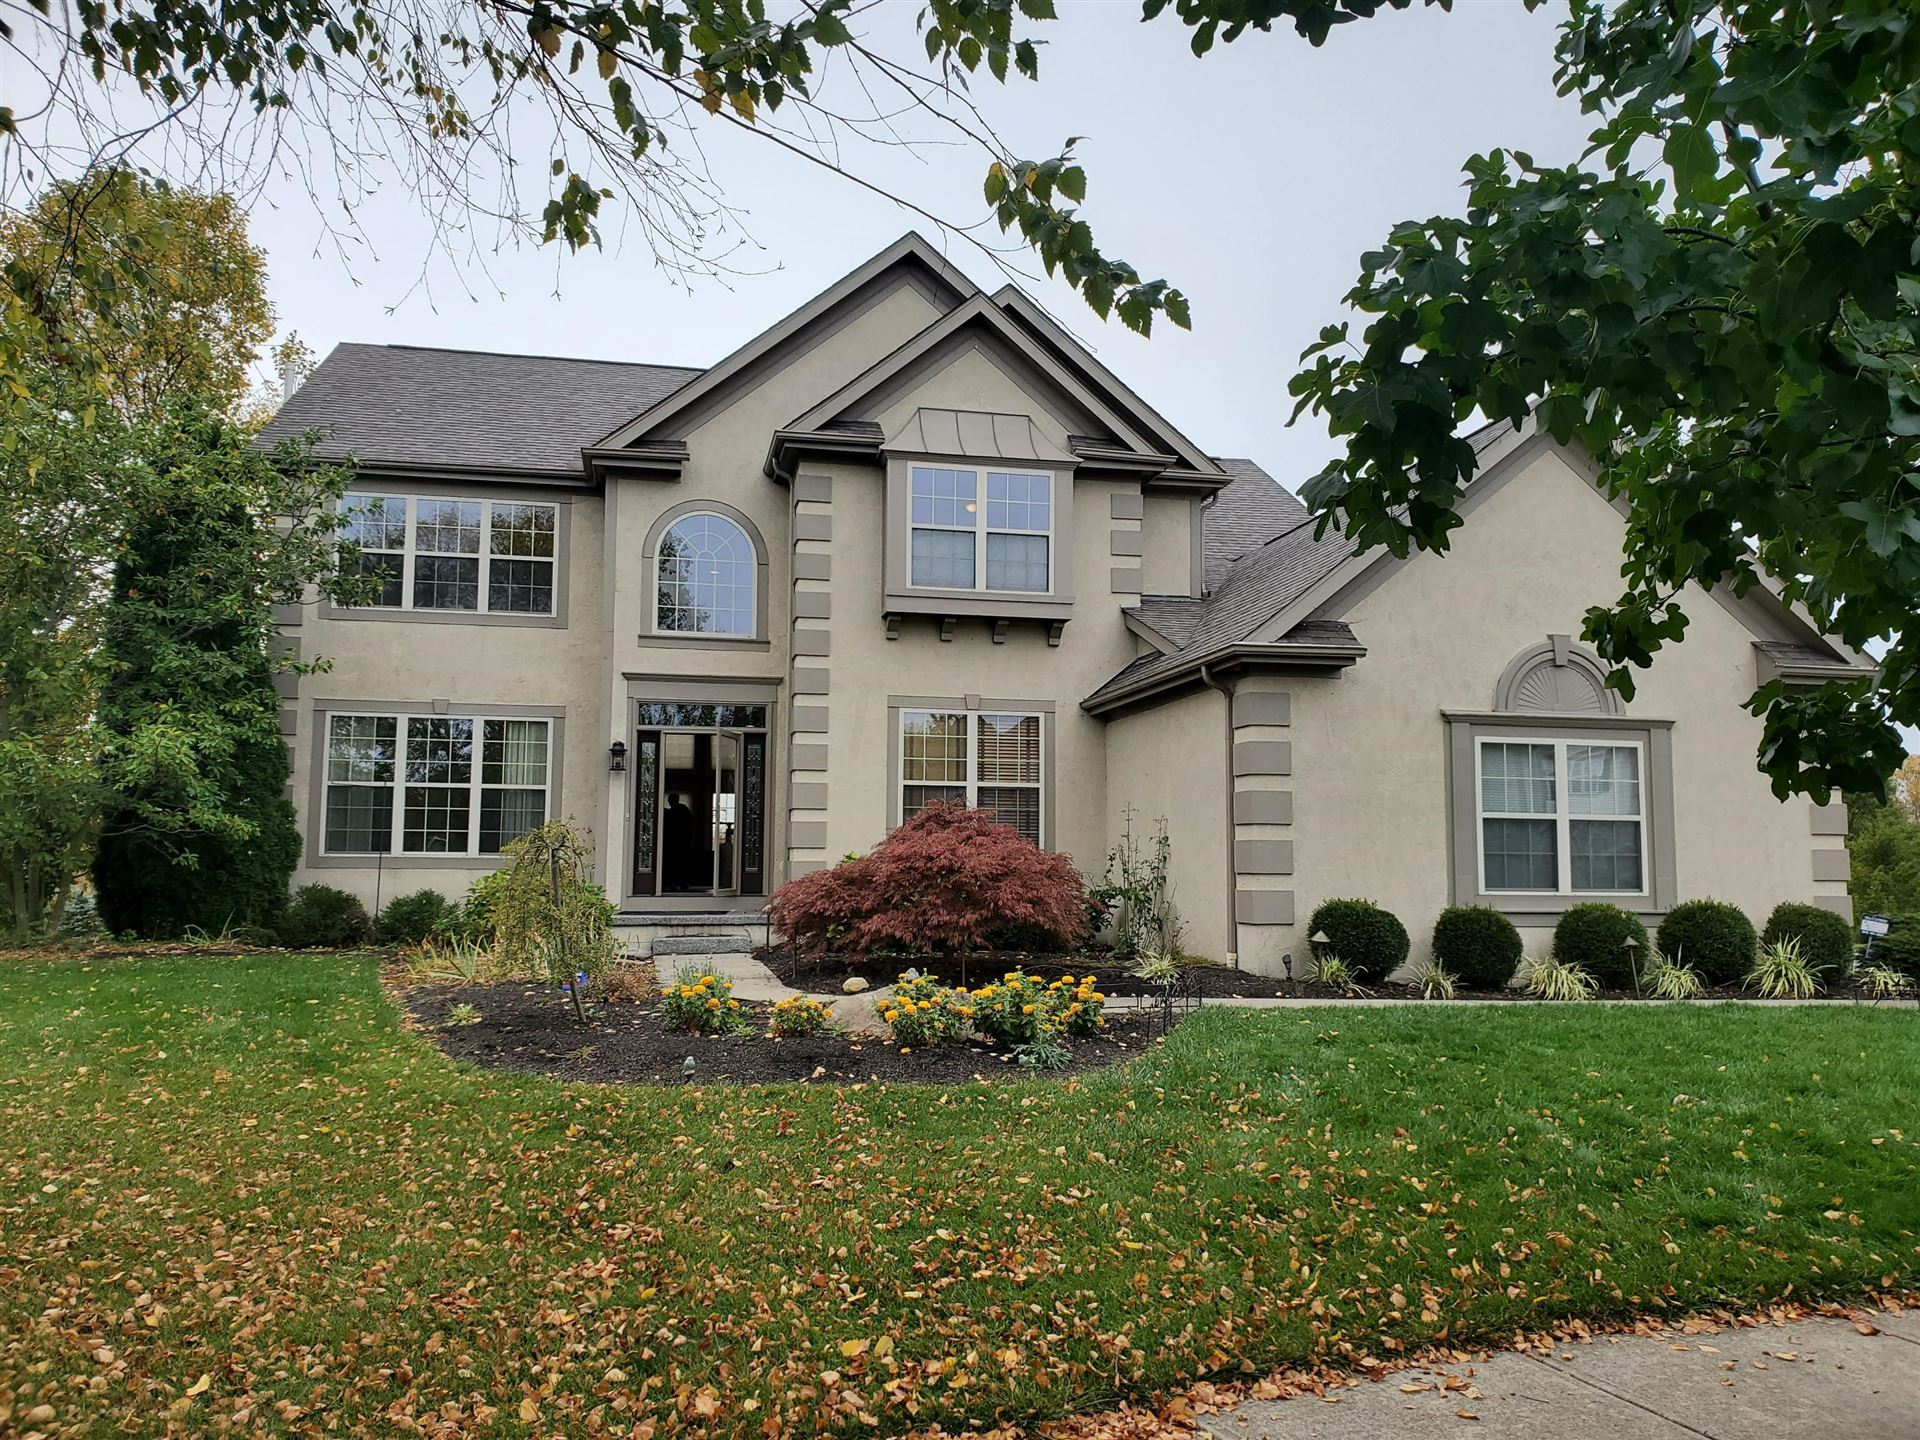 Photo of 5119 Port Haven Court, Galena, OH 43021 (MLS # 220037050)